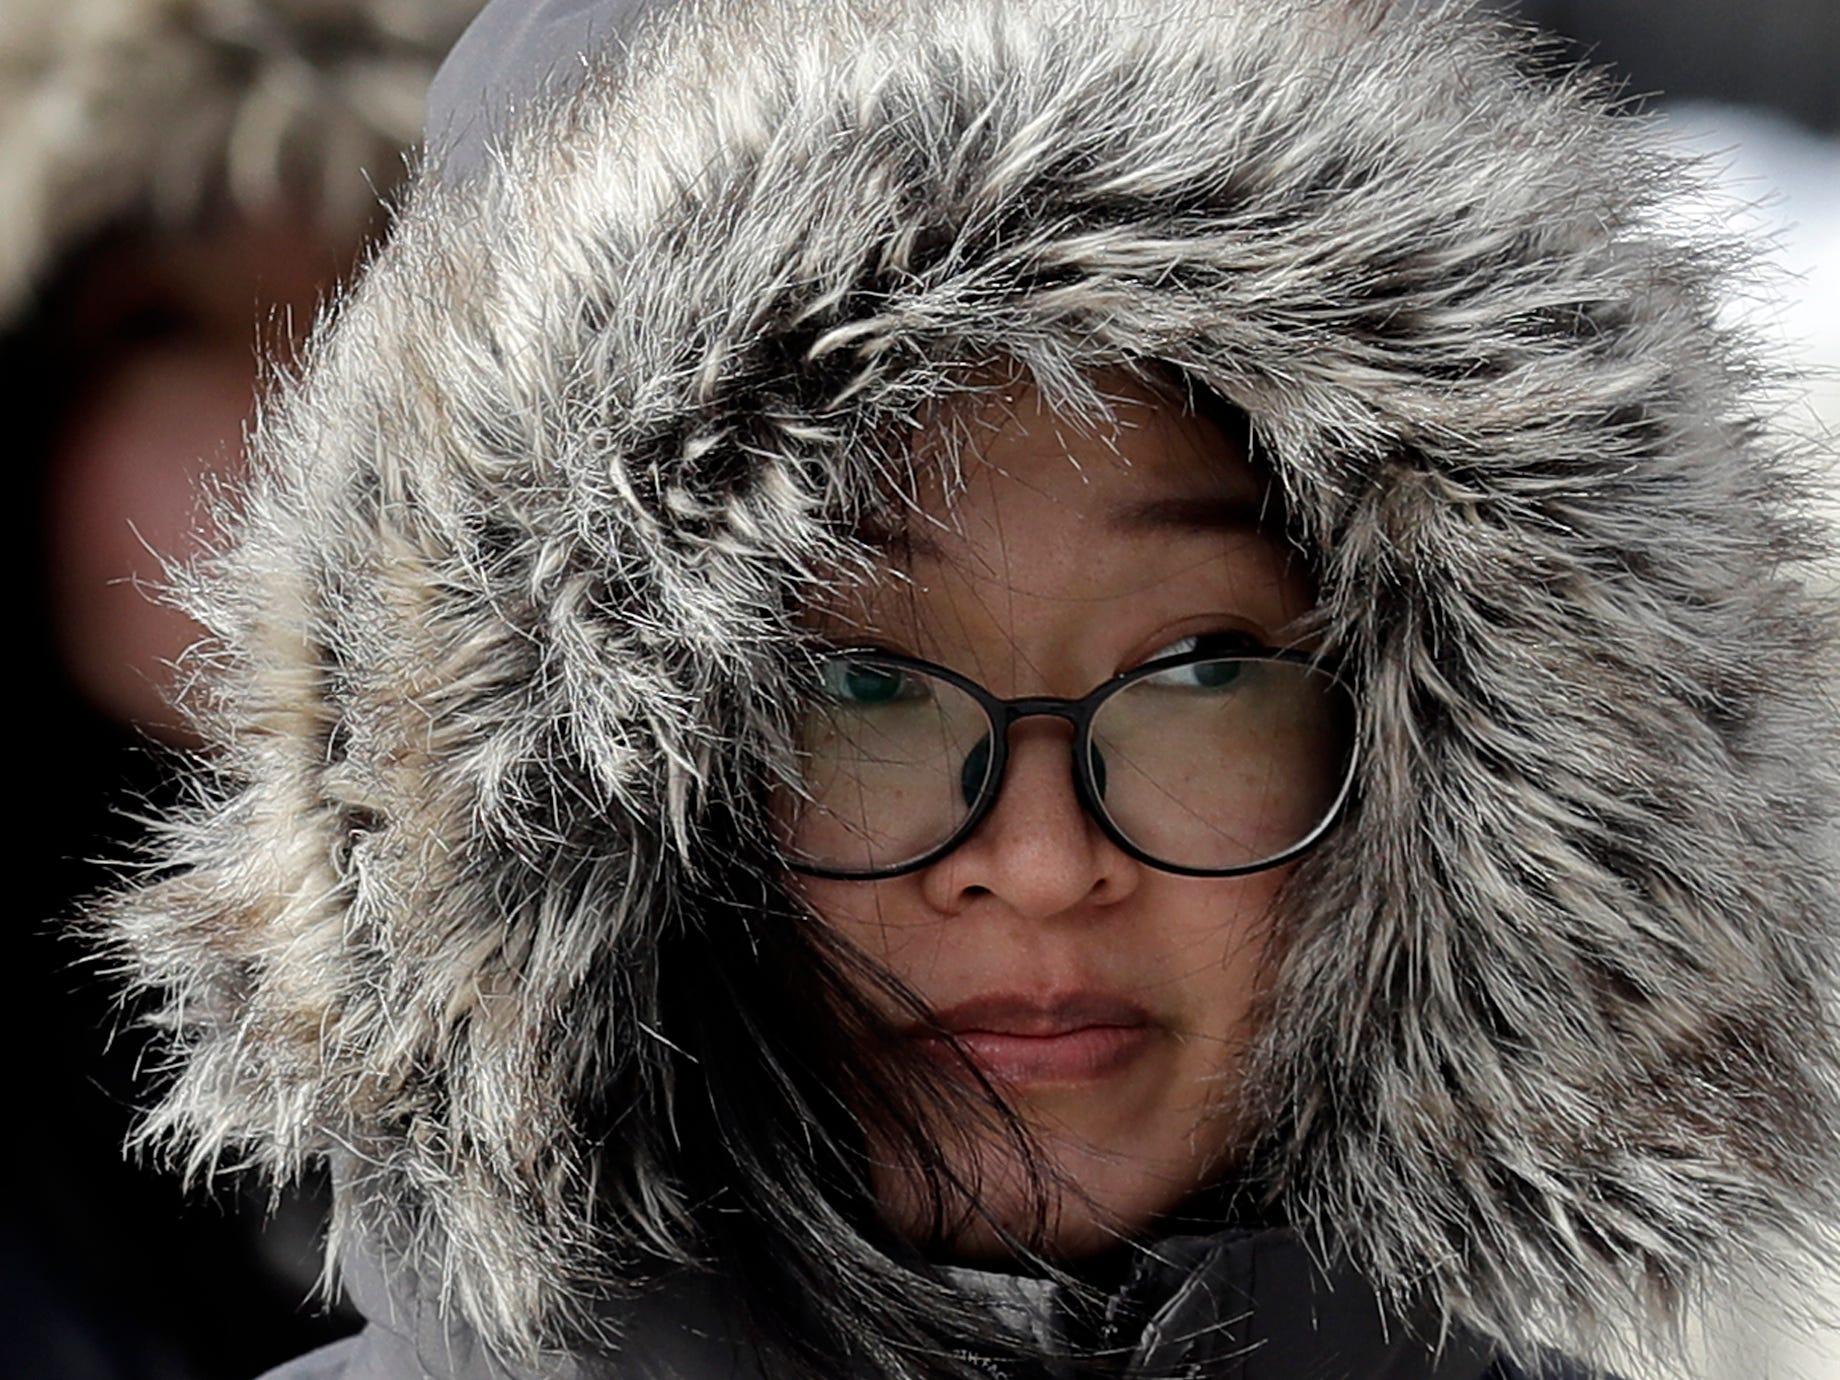 A women is bundled up against Chicago's cold, Jan. 27, 2019.